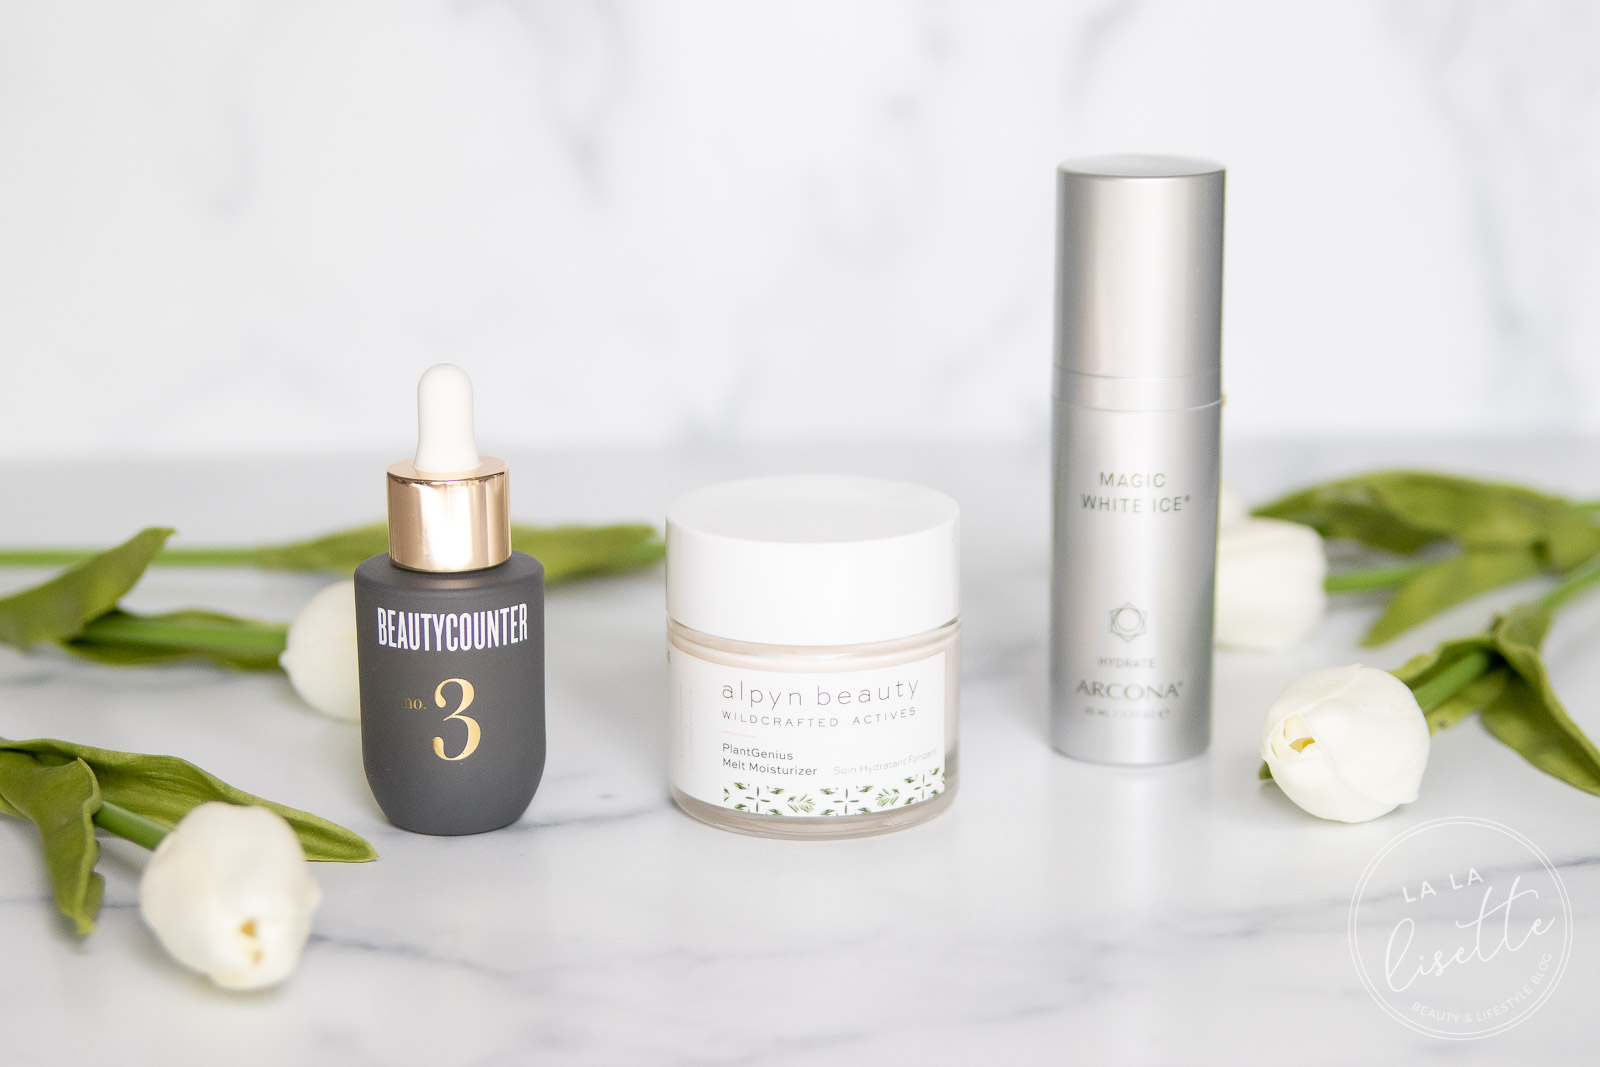 Beautycounter Balancing Oil, Alpyn Beauty PlantGenius Melt Moisturizer, Arcona White Magic Gel